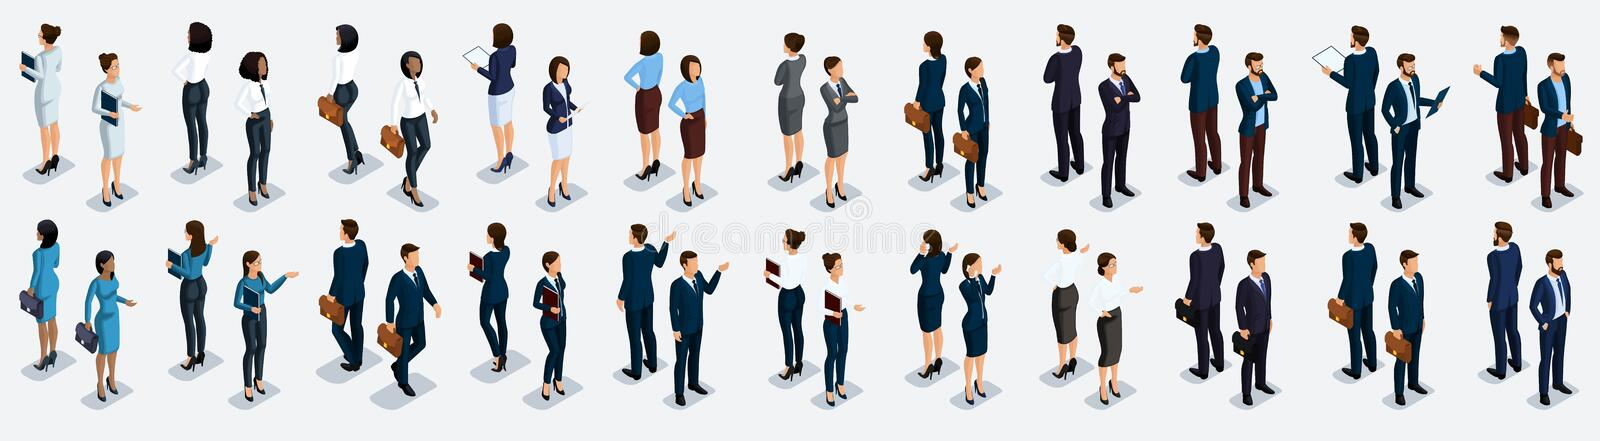 Isometric large set of businessmen and business woman, front view and rear view, vector illustration.  vector illustration